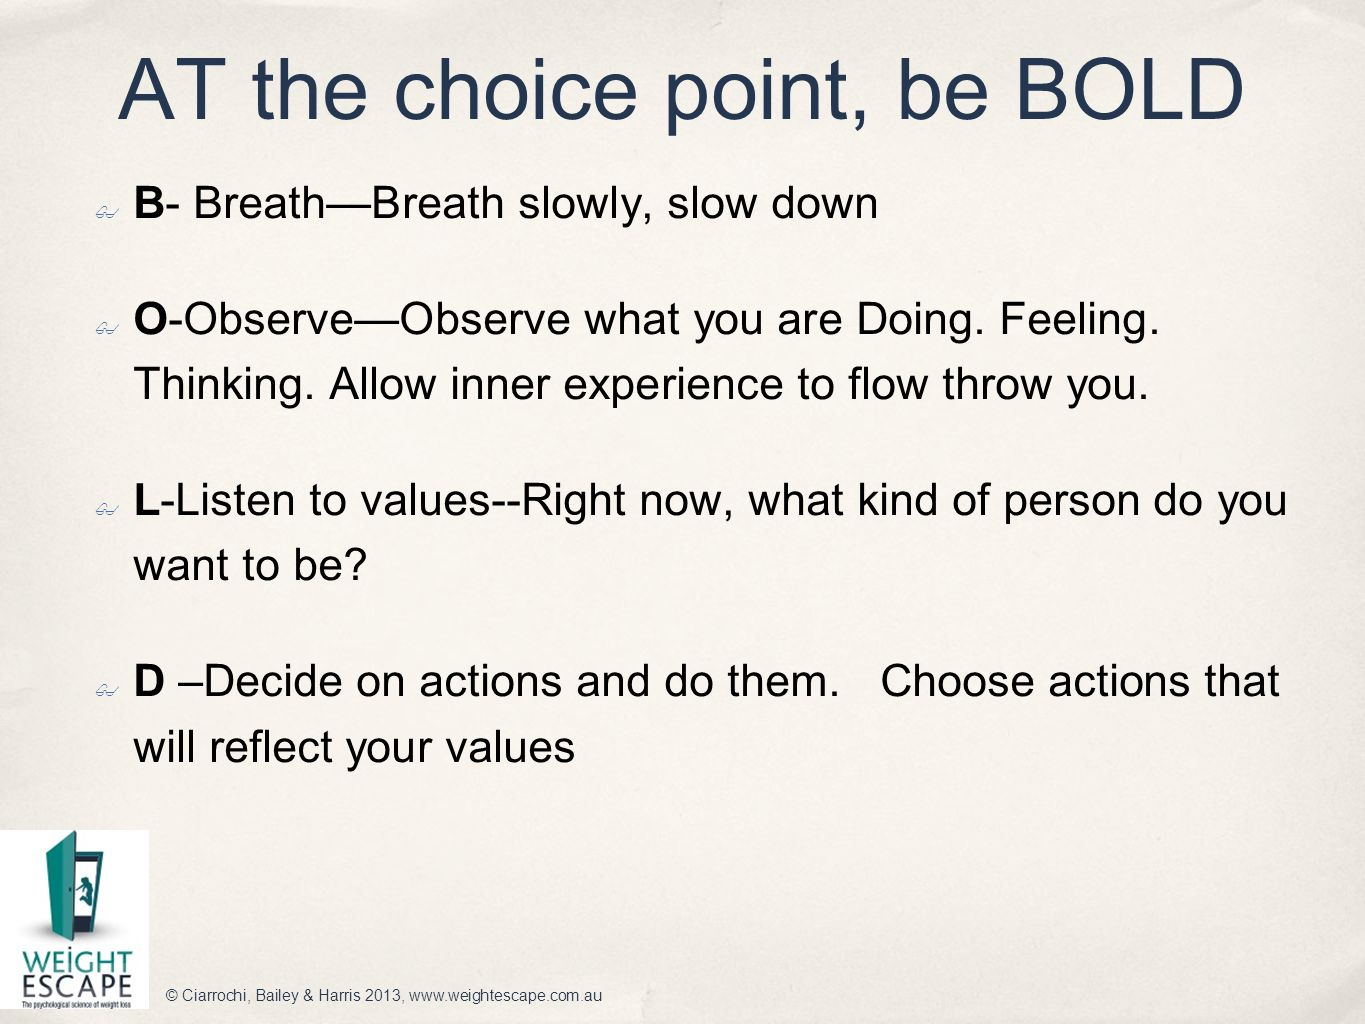 AT the choice point, be BOLD